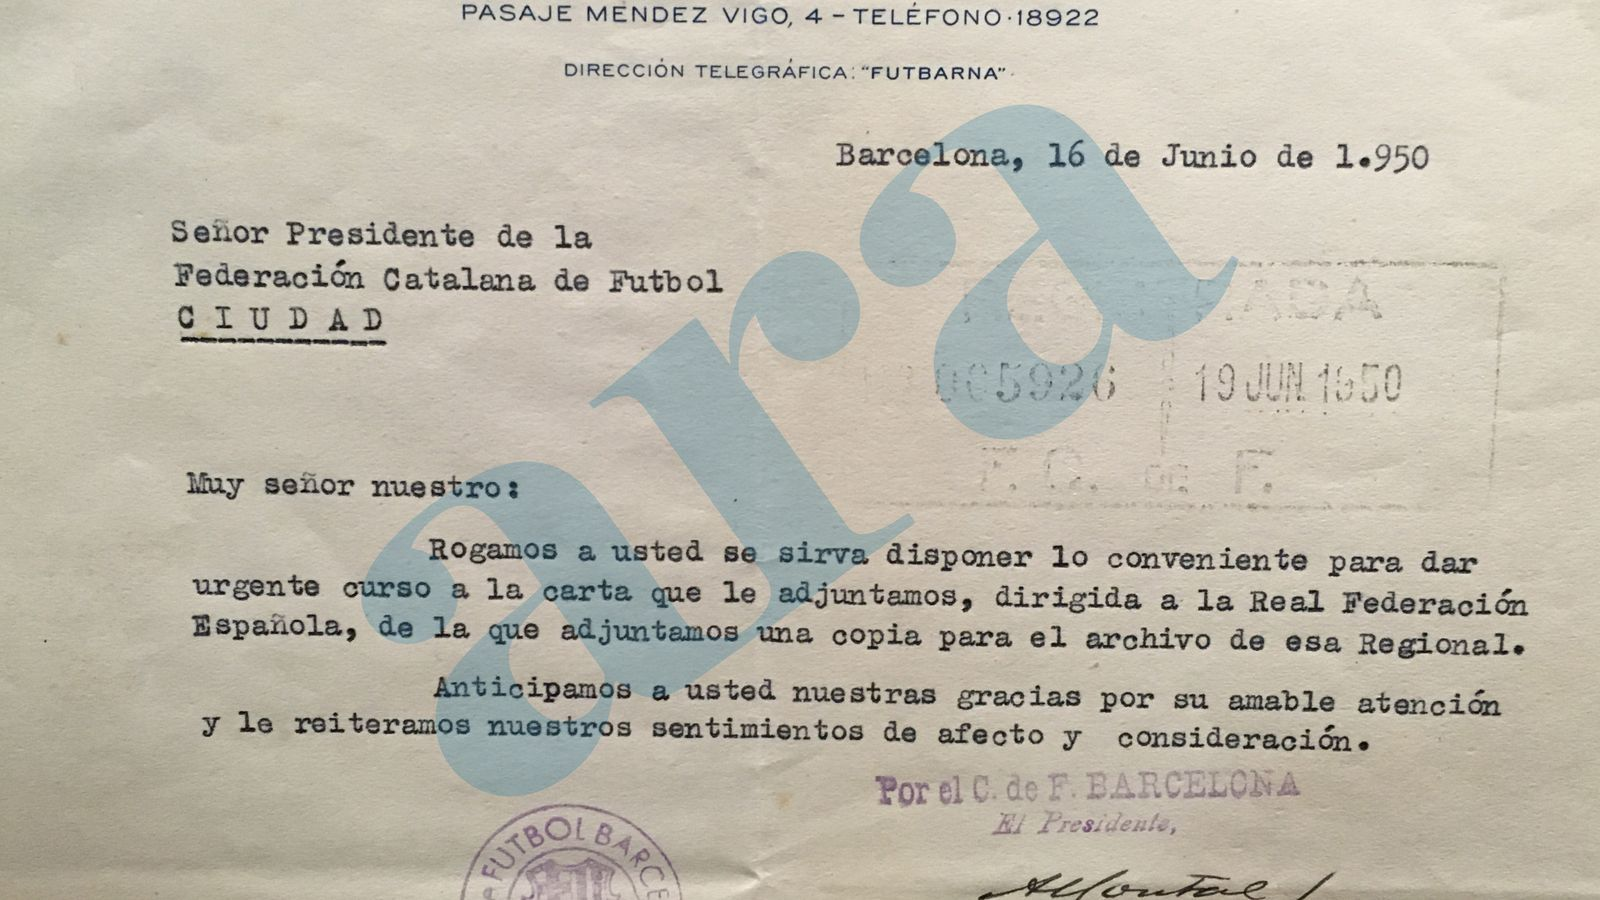 El document que acompanya la carta